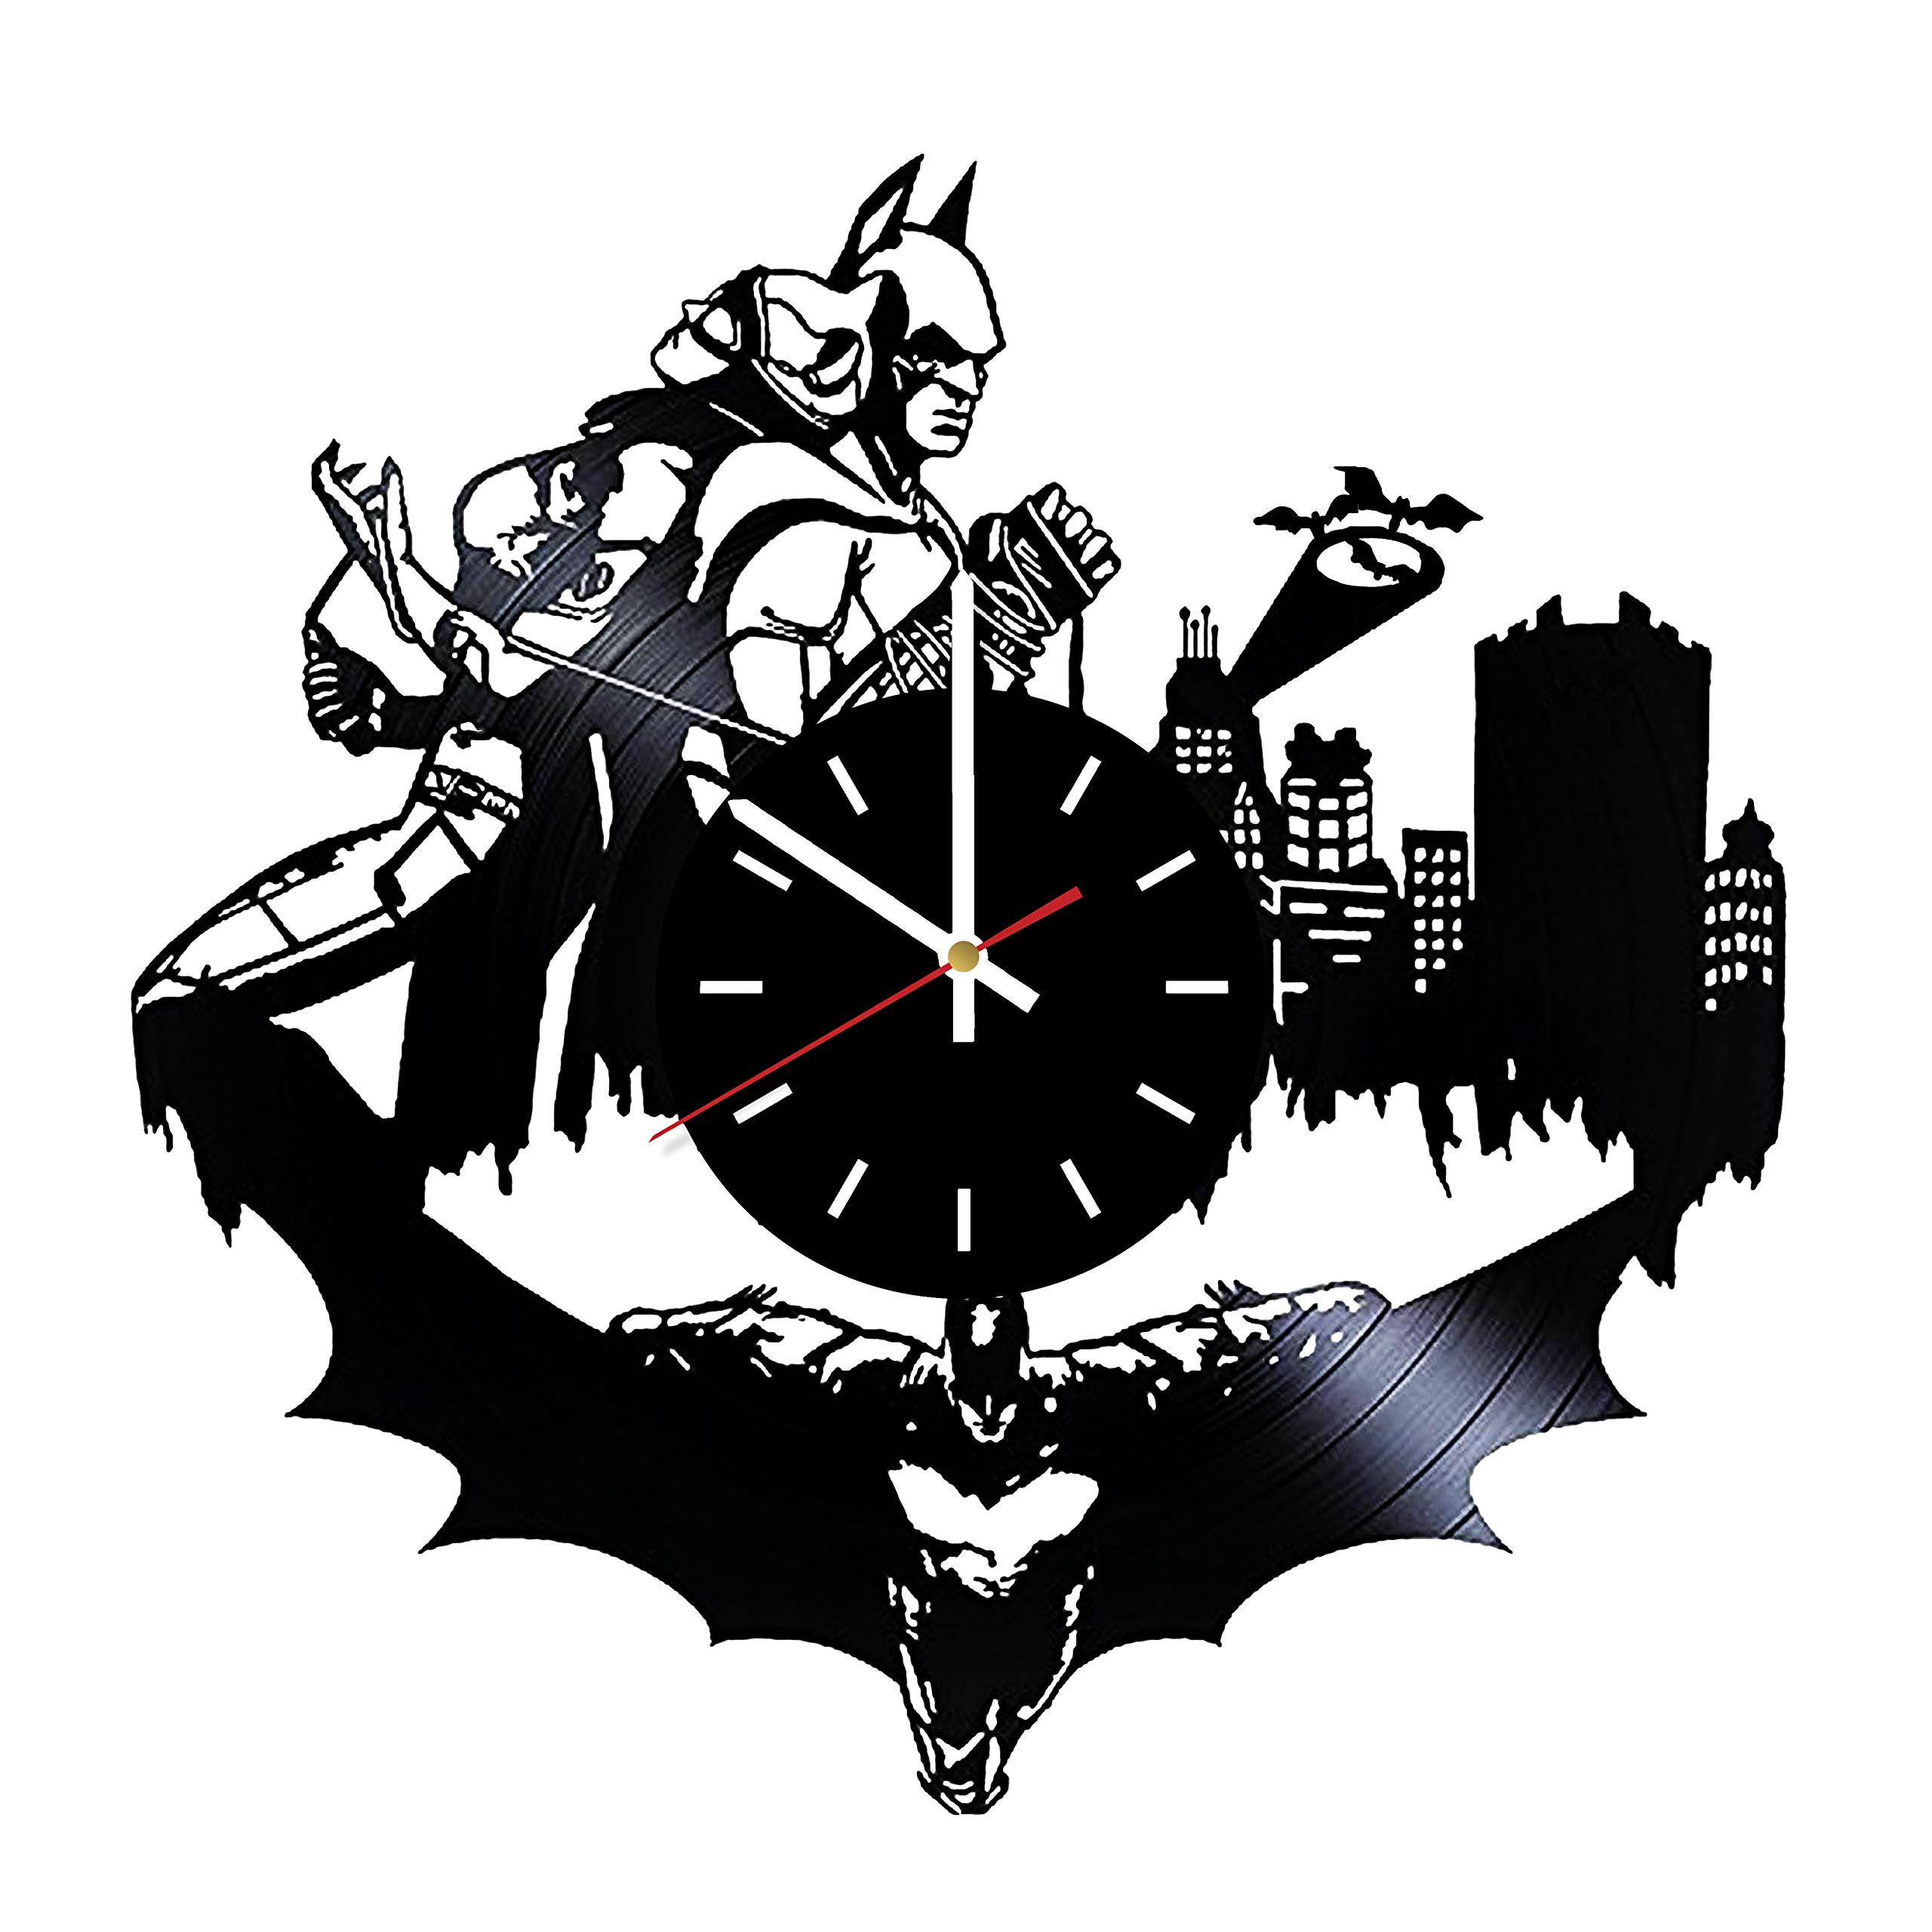 Everyday Arts Batman and Catwoman Superhero Design Vinyl Record Wall Clock - Get Unique Bedroom or Garage Wall Decor - Gift Ideas for Friends, Brother - Darth Vader Unique Modern Art